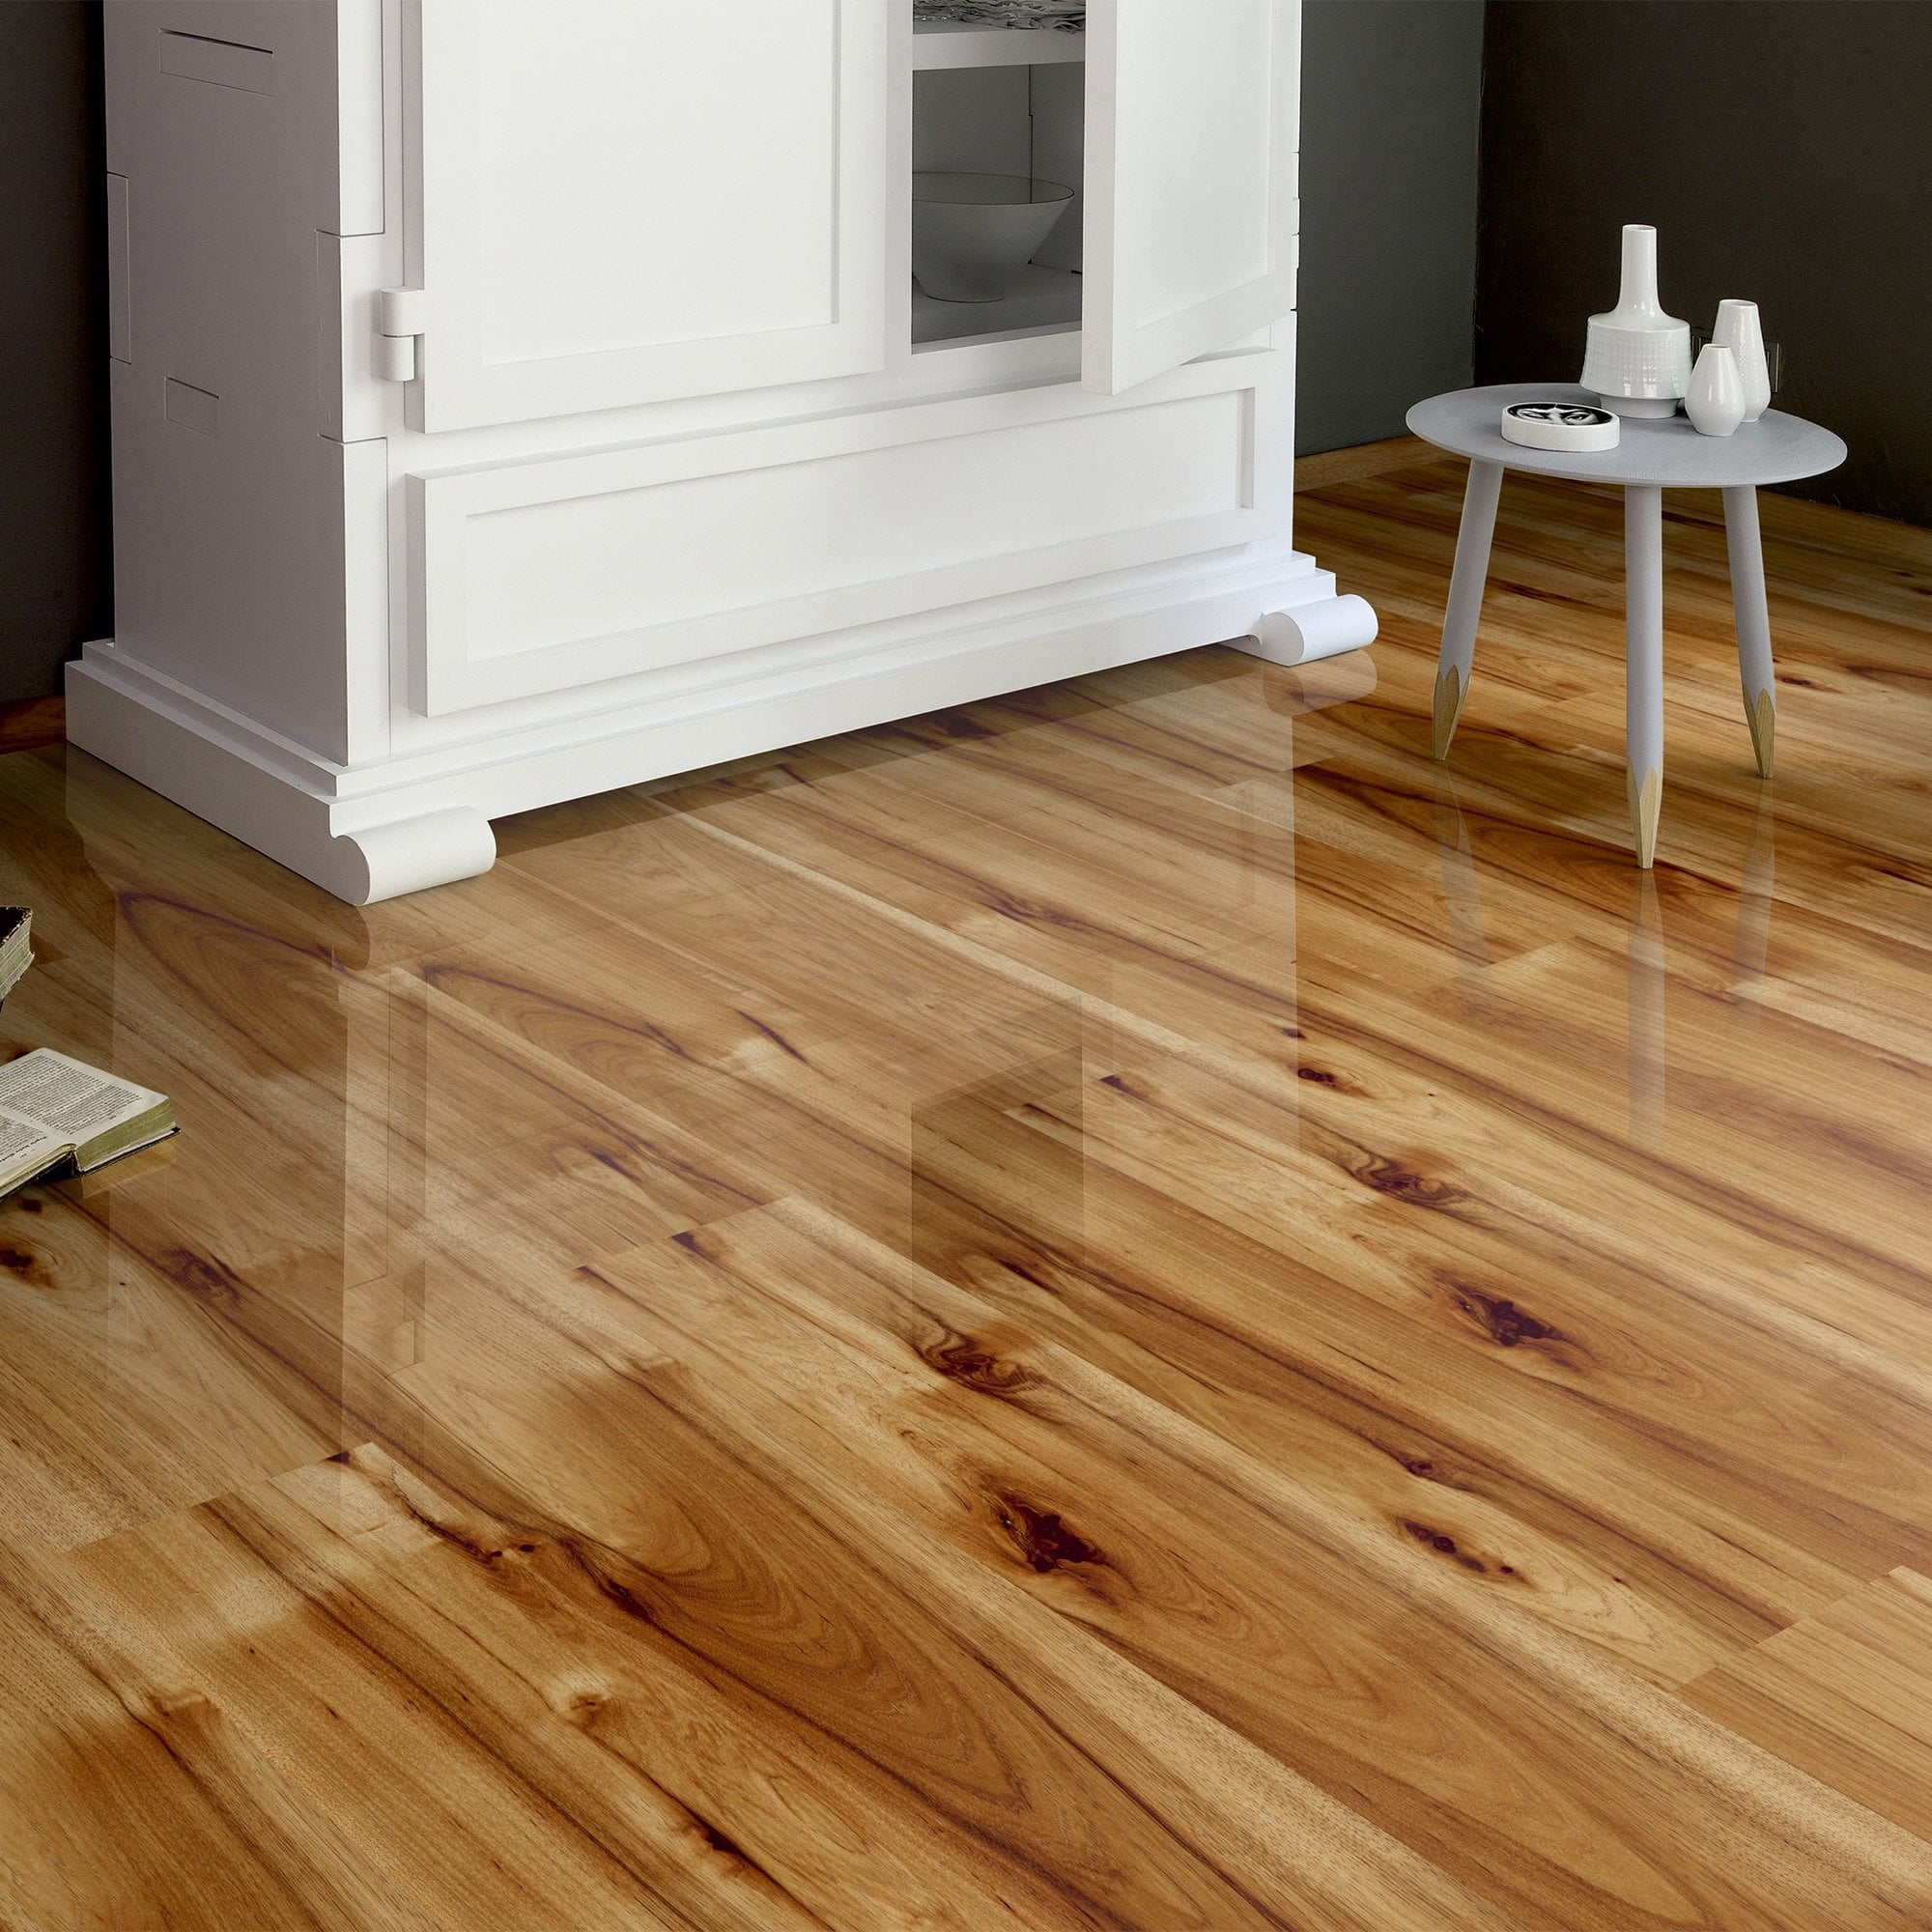 Home High Gloss 8mm Hickory Oak 4V Laminate Flooring